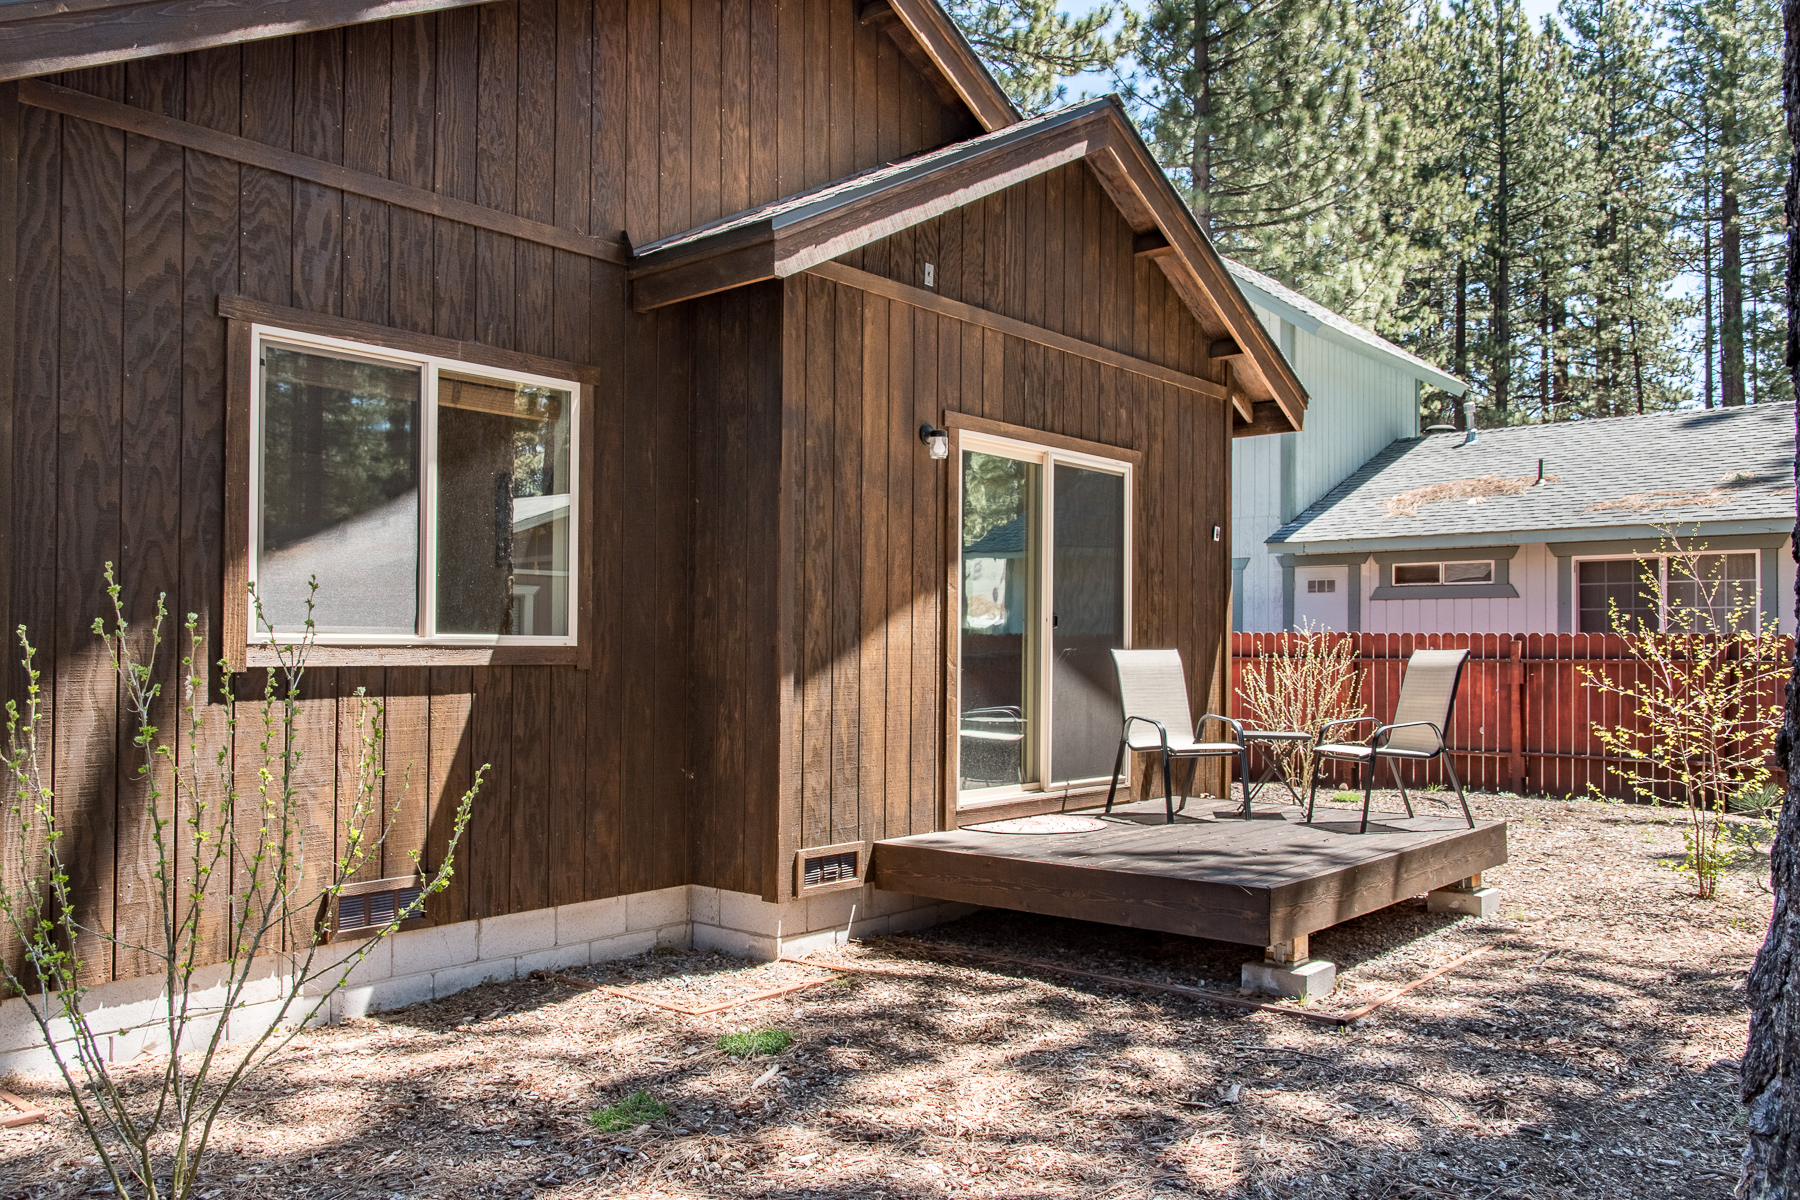 rentals south tahoe rent friendly north for deals discount cabins redawng pet view lake vacation rental dog cabin military